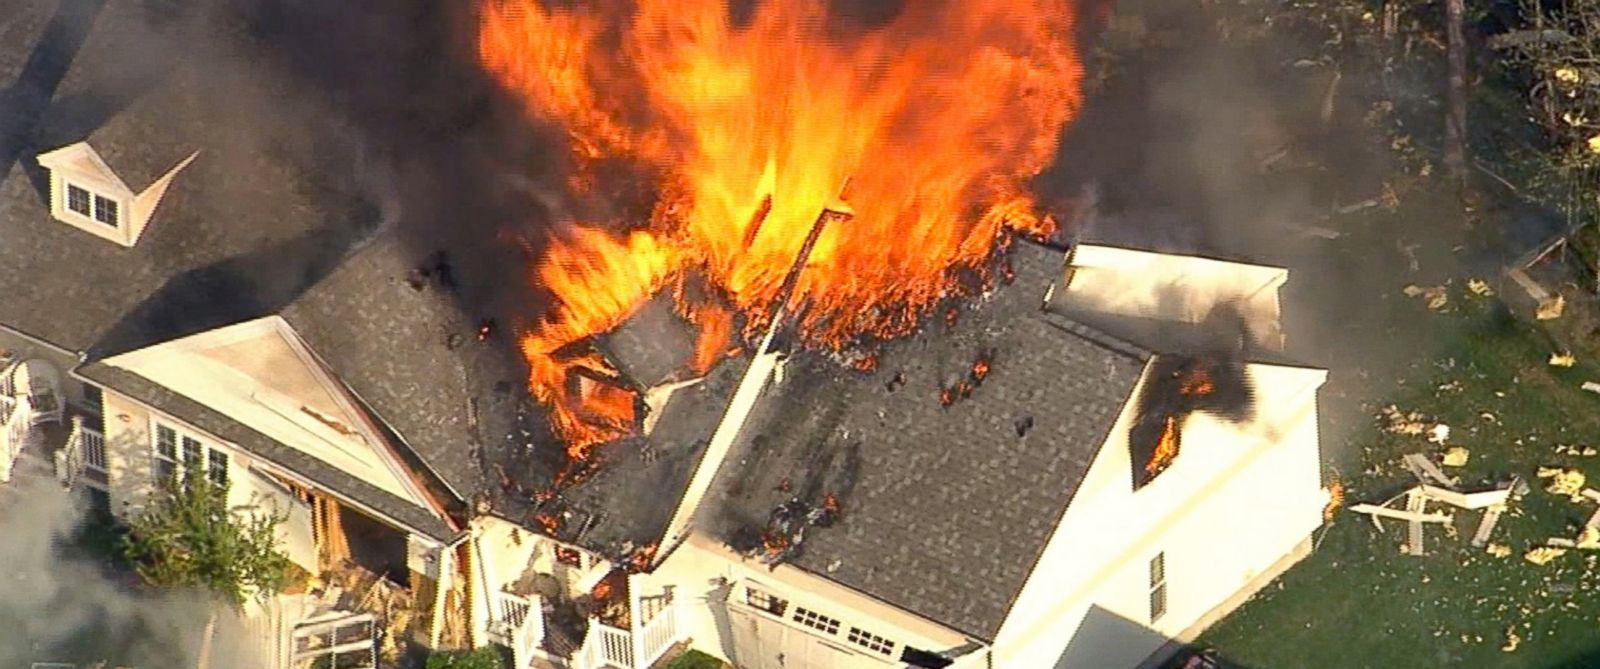 PHOTO: In this frame grab from television helicopter video, a home bursts into flames in Brentwood, N.H., May 12, 2014.